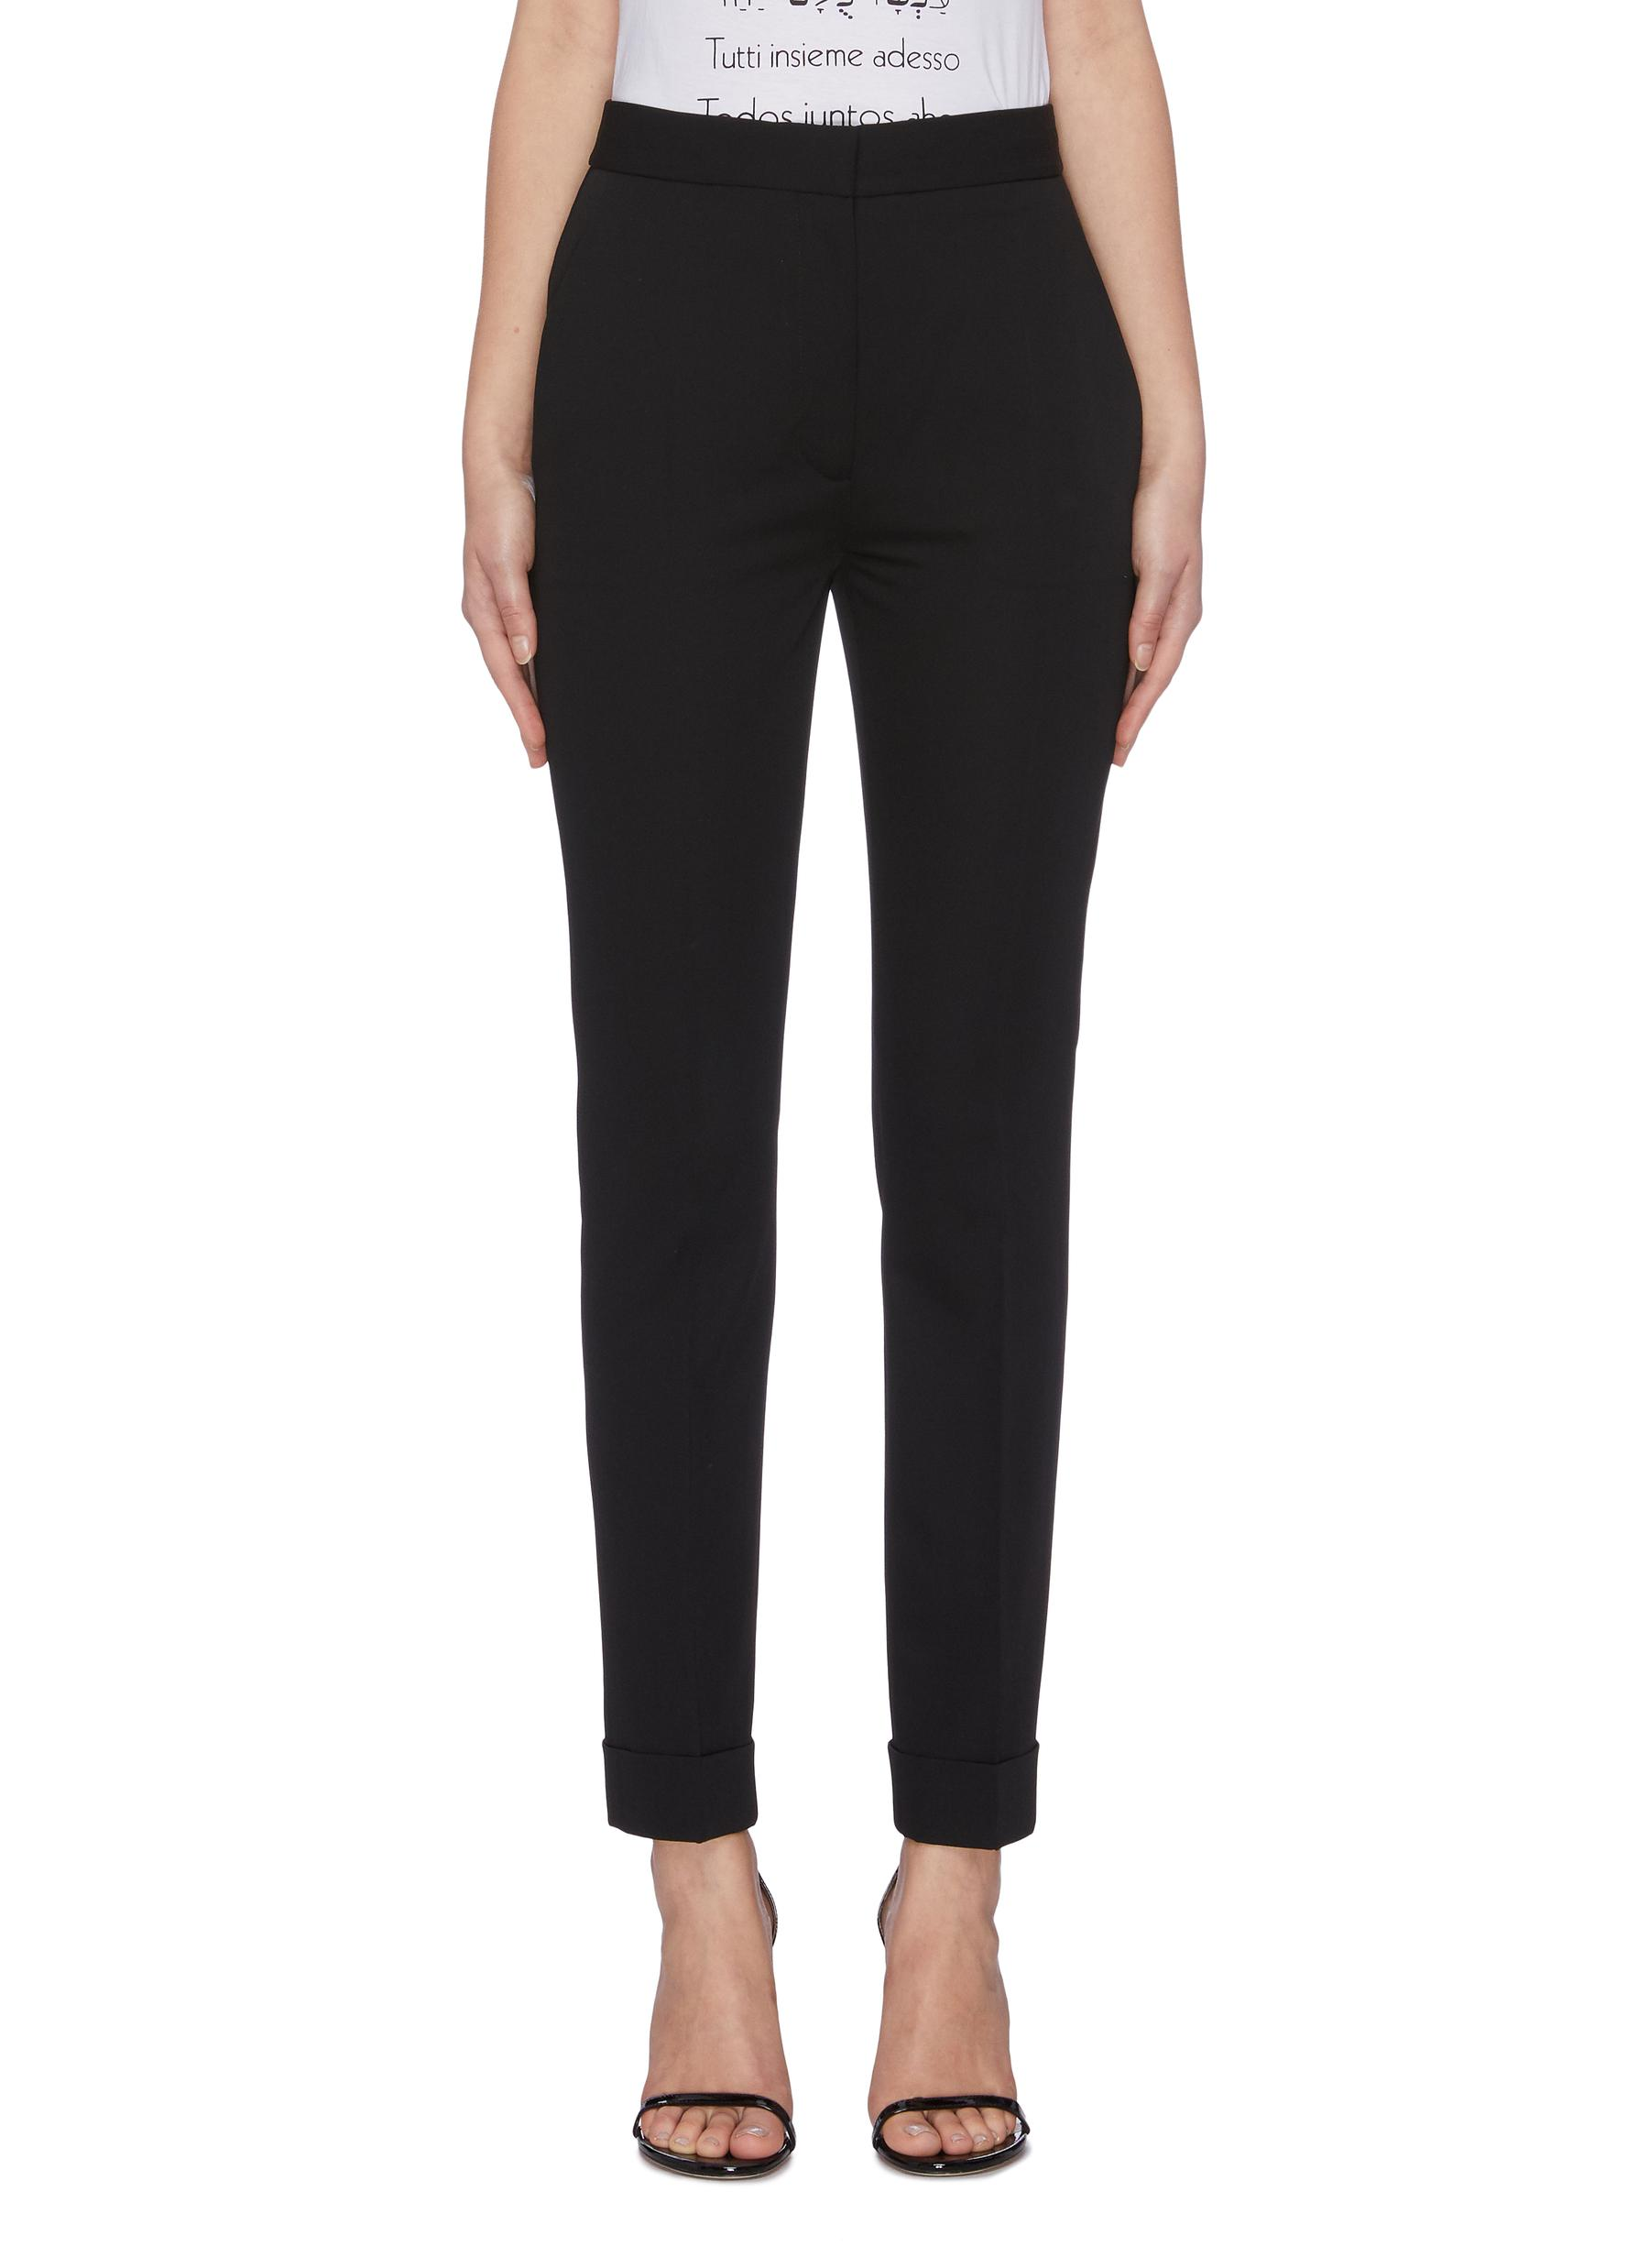 Skinny suiting pants by Stella Mccartney